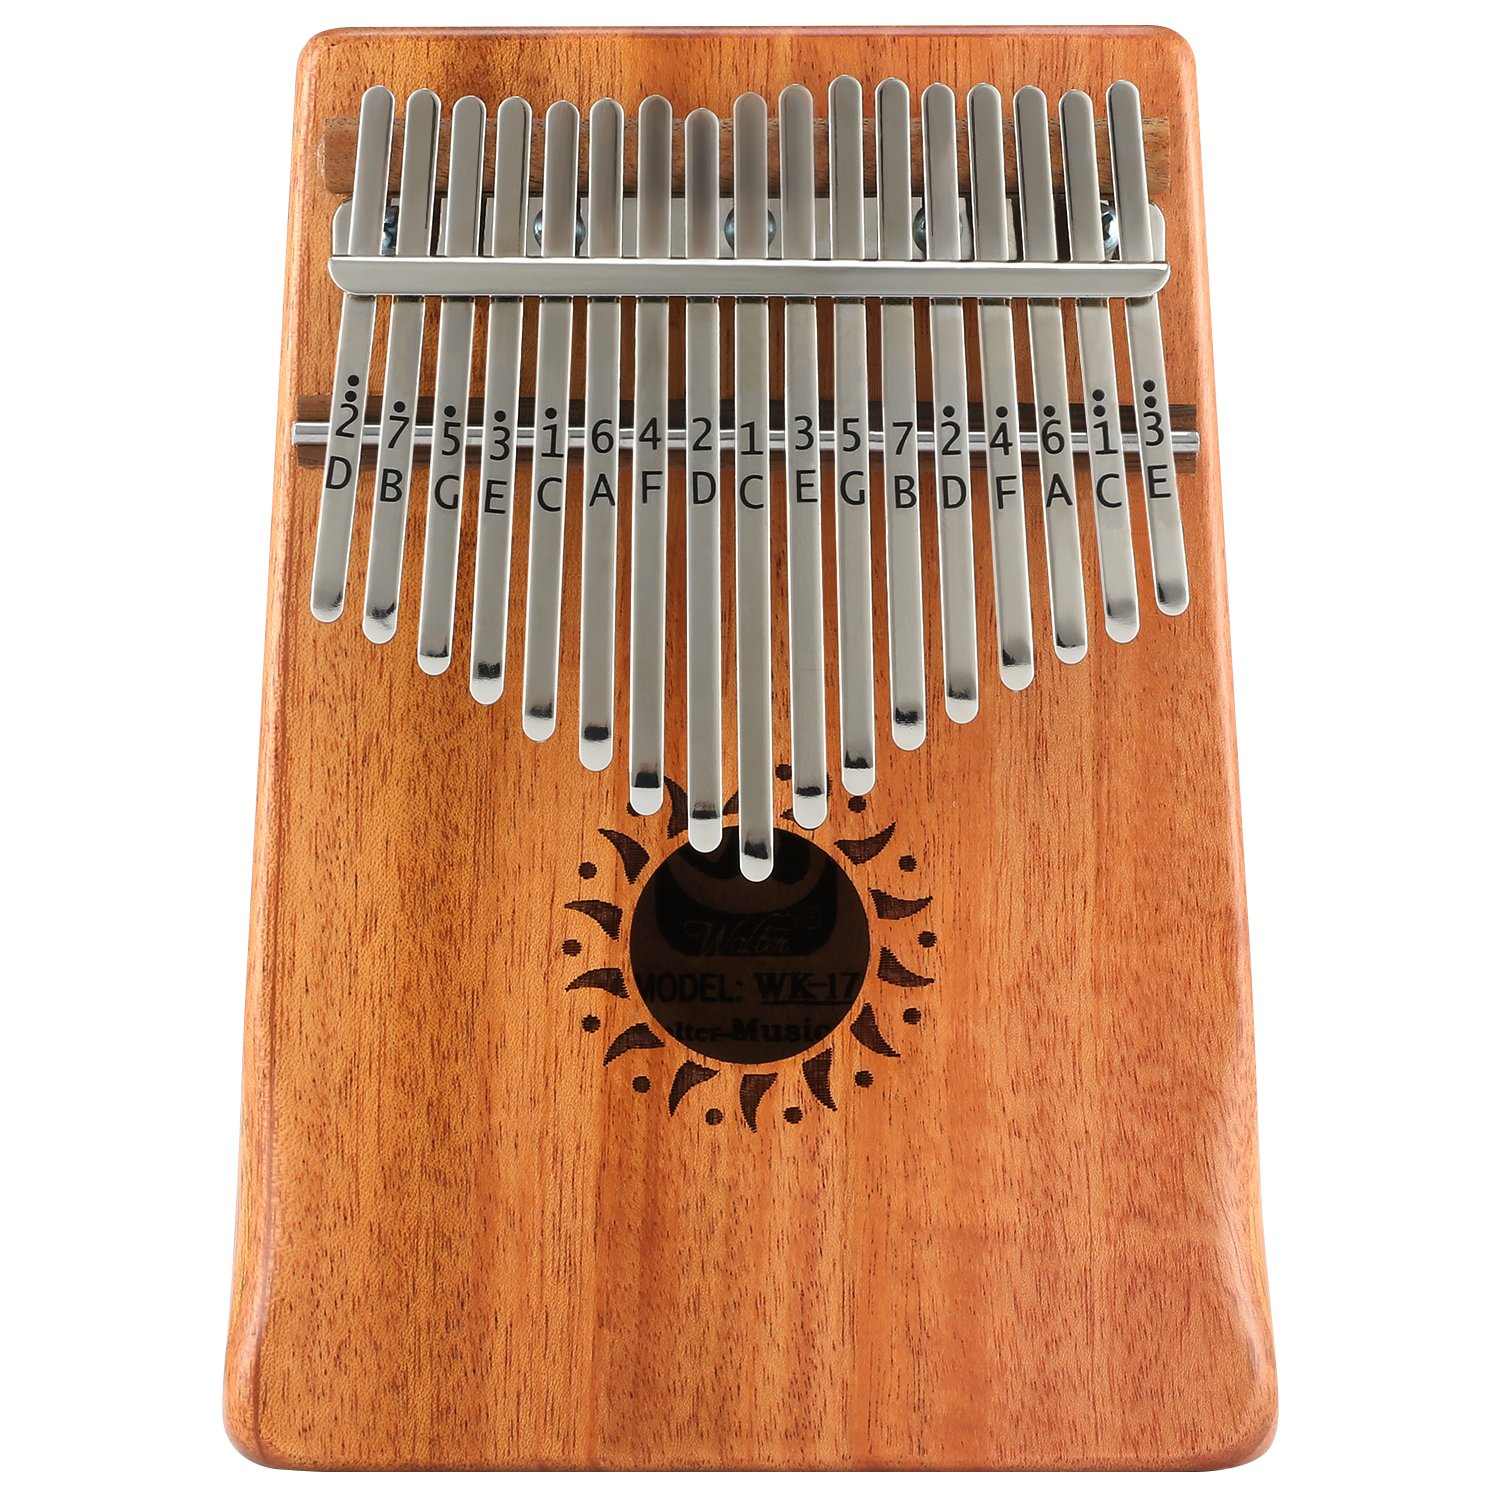 Donner 17 Key Kalimba Thumb Piano Solid Finger Piano Mahogany Body DKL-17 With Hard Case by Donner (Image #2)